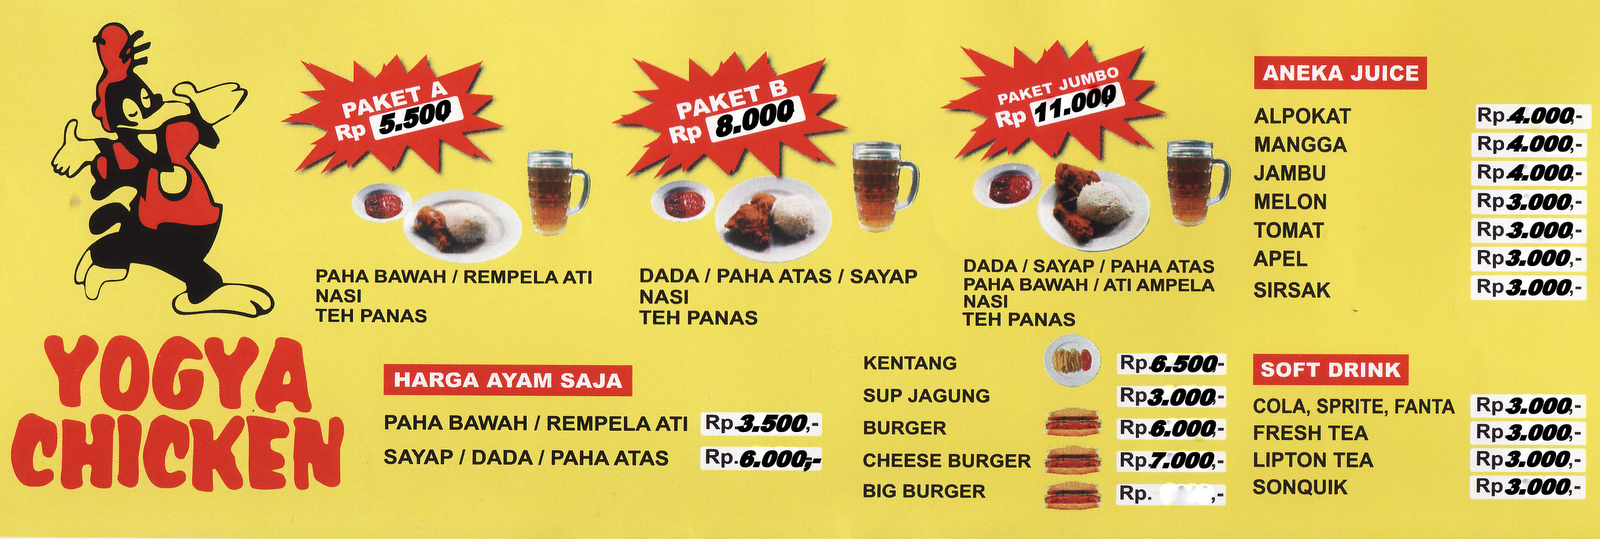 rekomendasi fast food yogya chicken